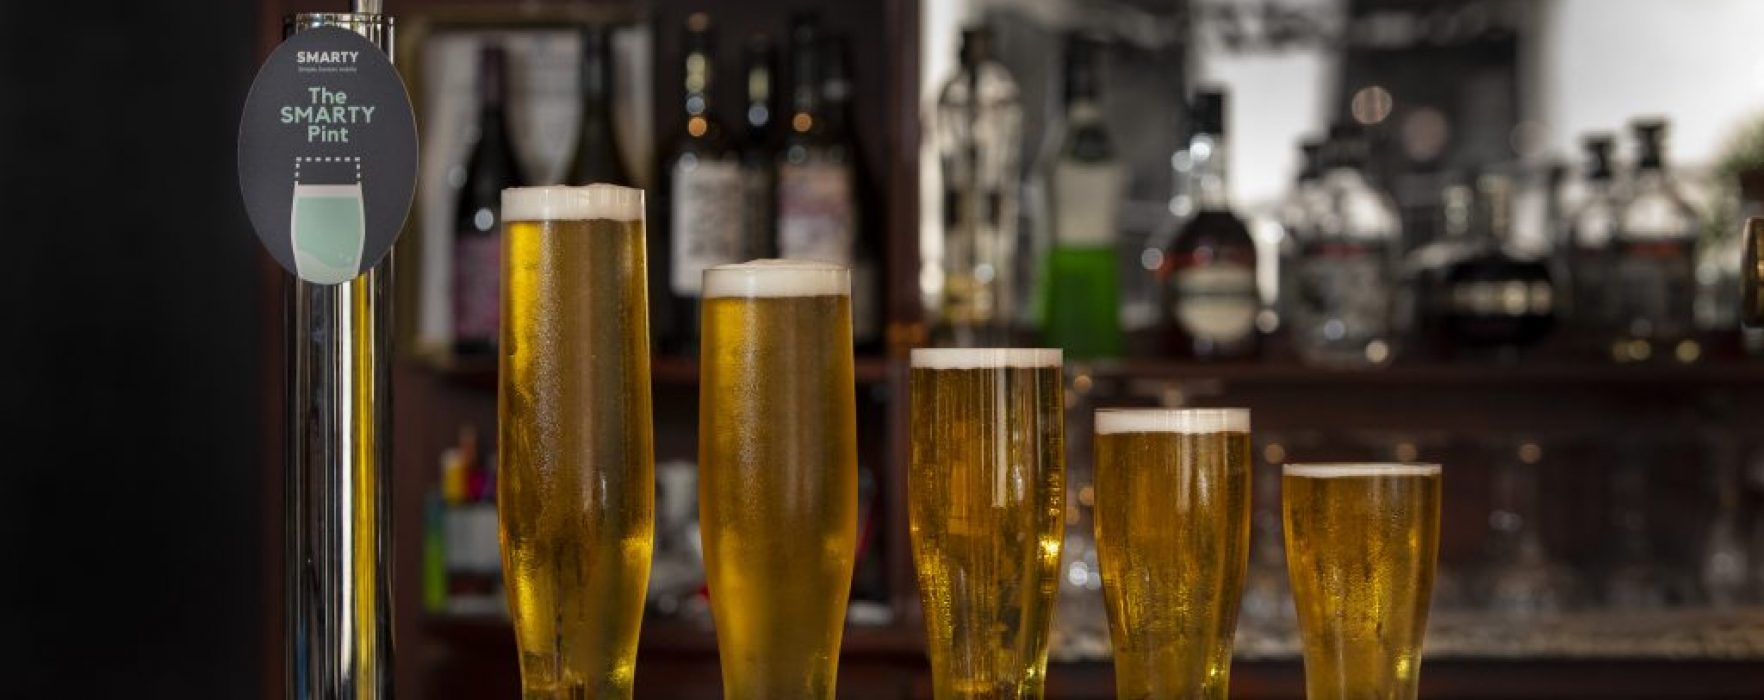 The average drinker will spend £38,819 on pints of beer over a lifetime